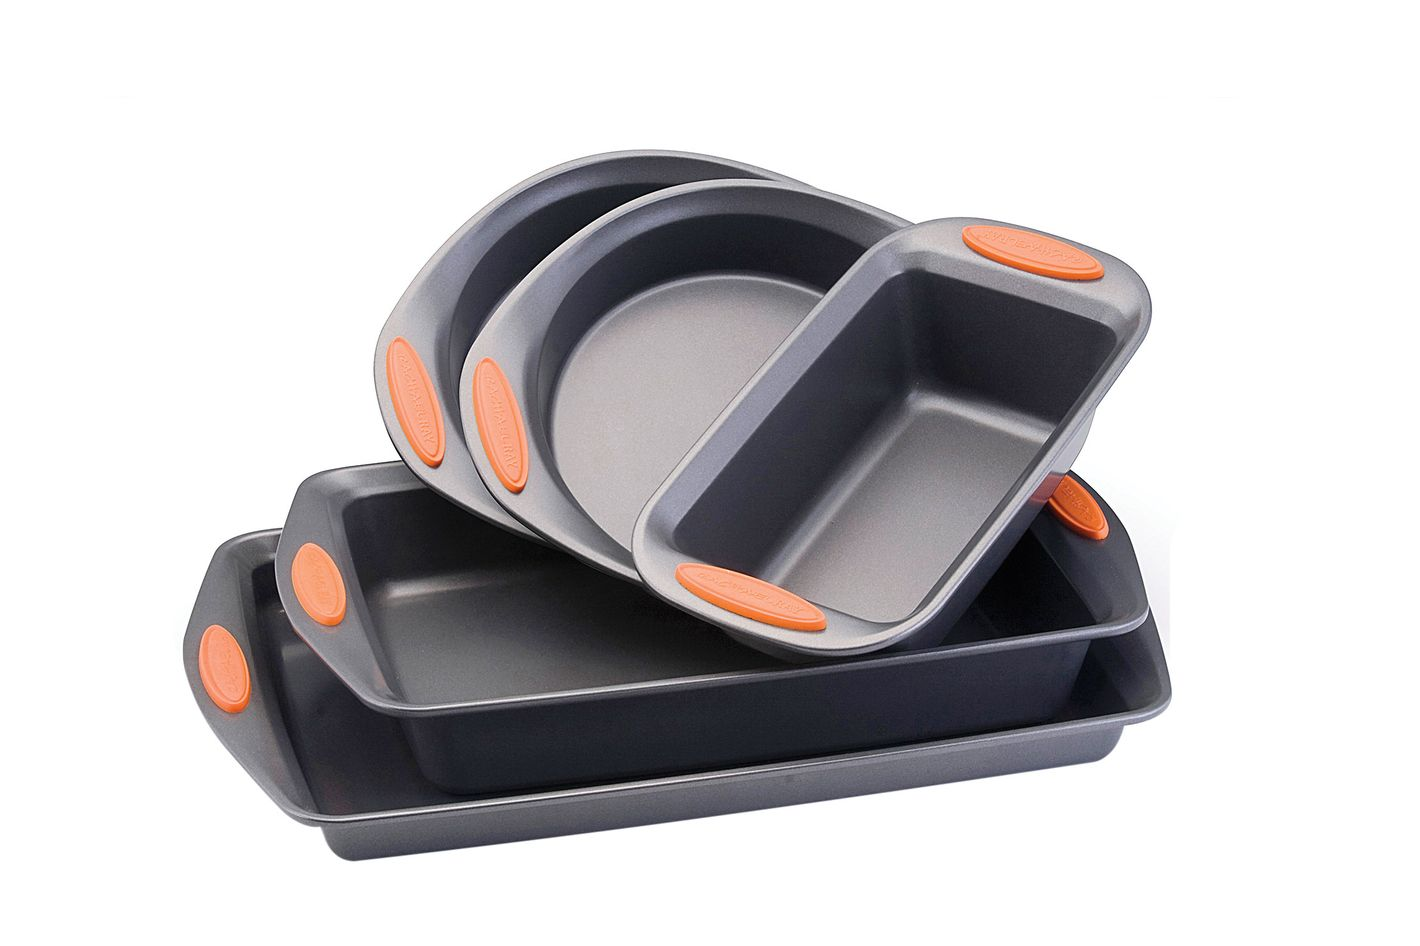 Rachael Ray set of five nonstick baking pans